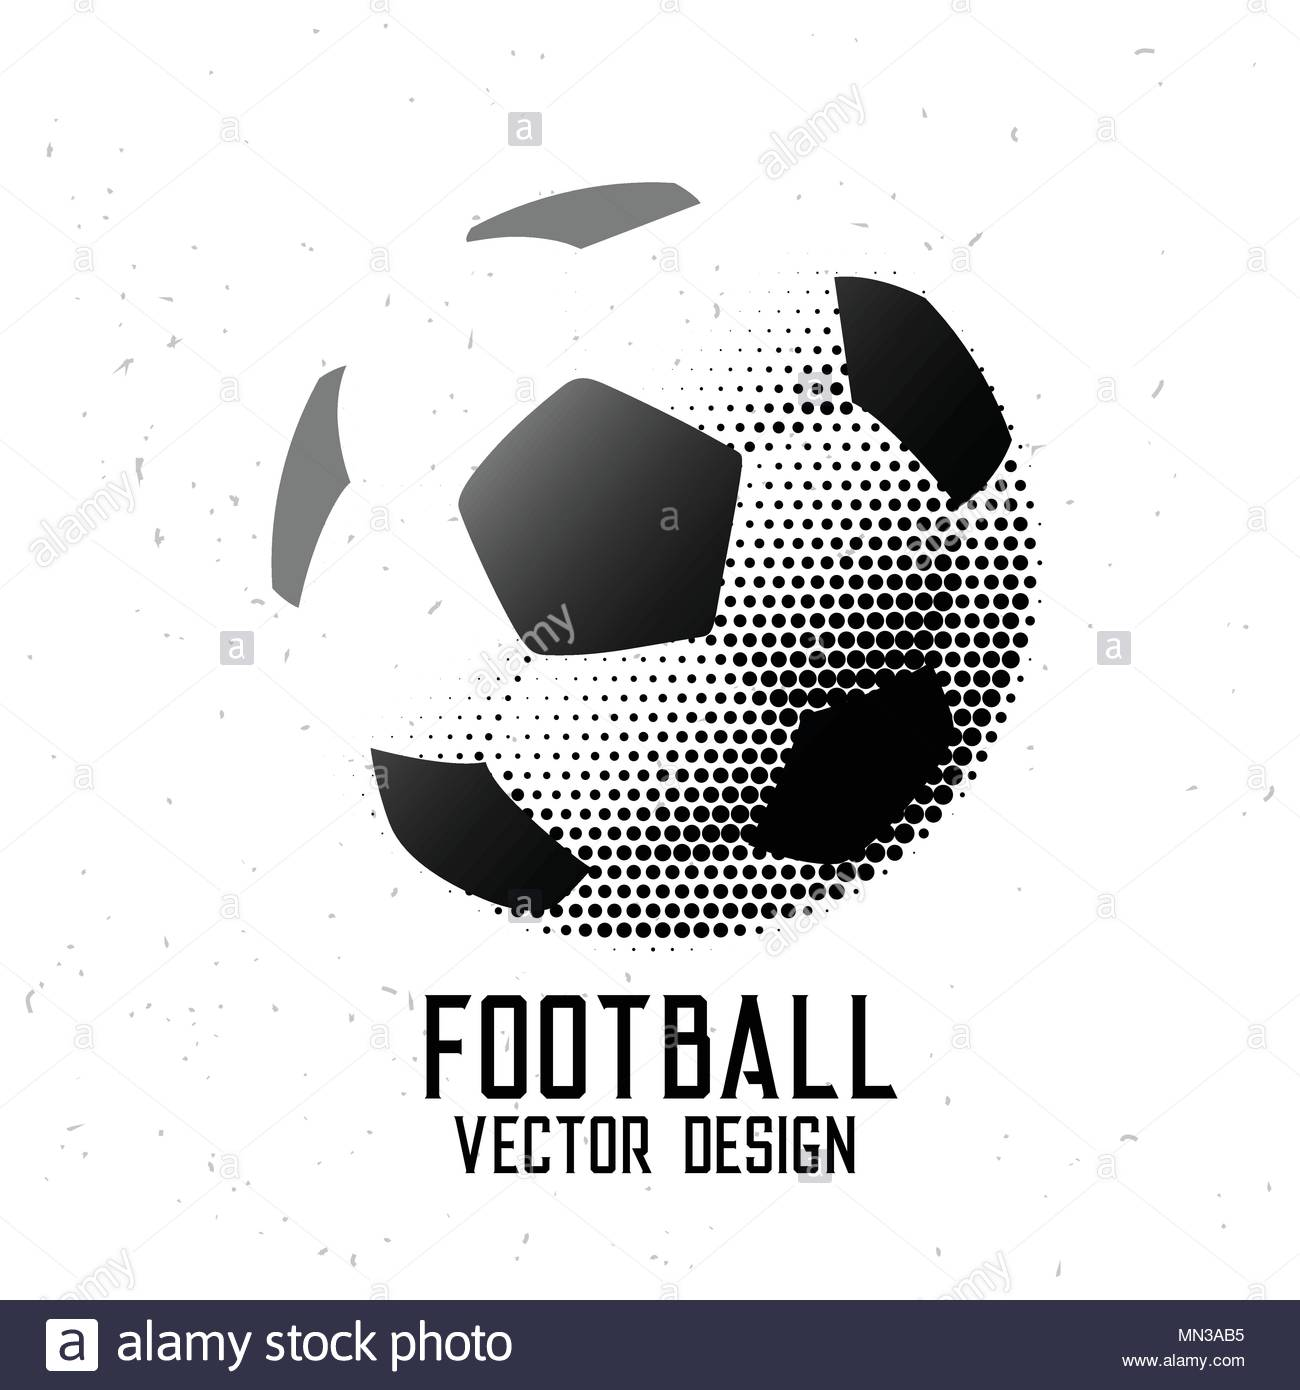 Soccer football halftone abstract design stock image